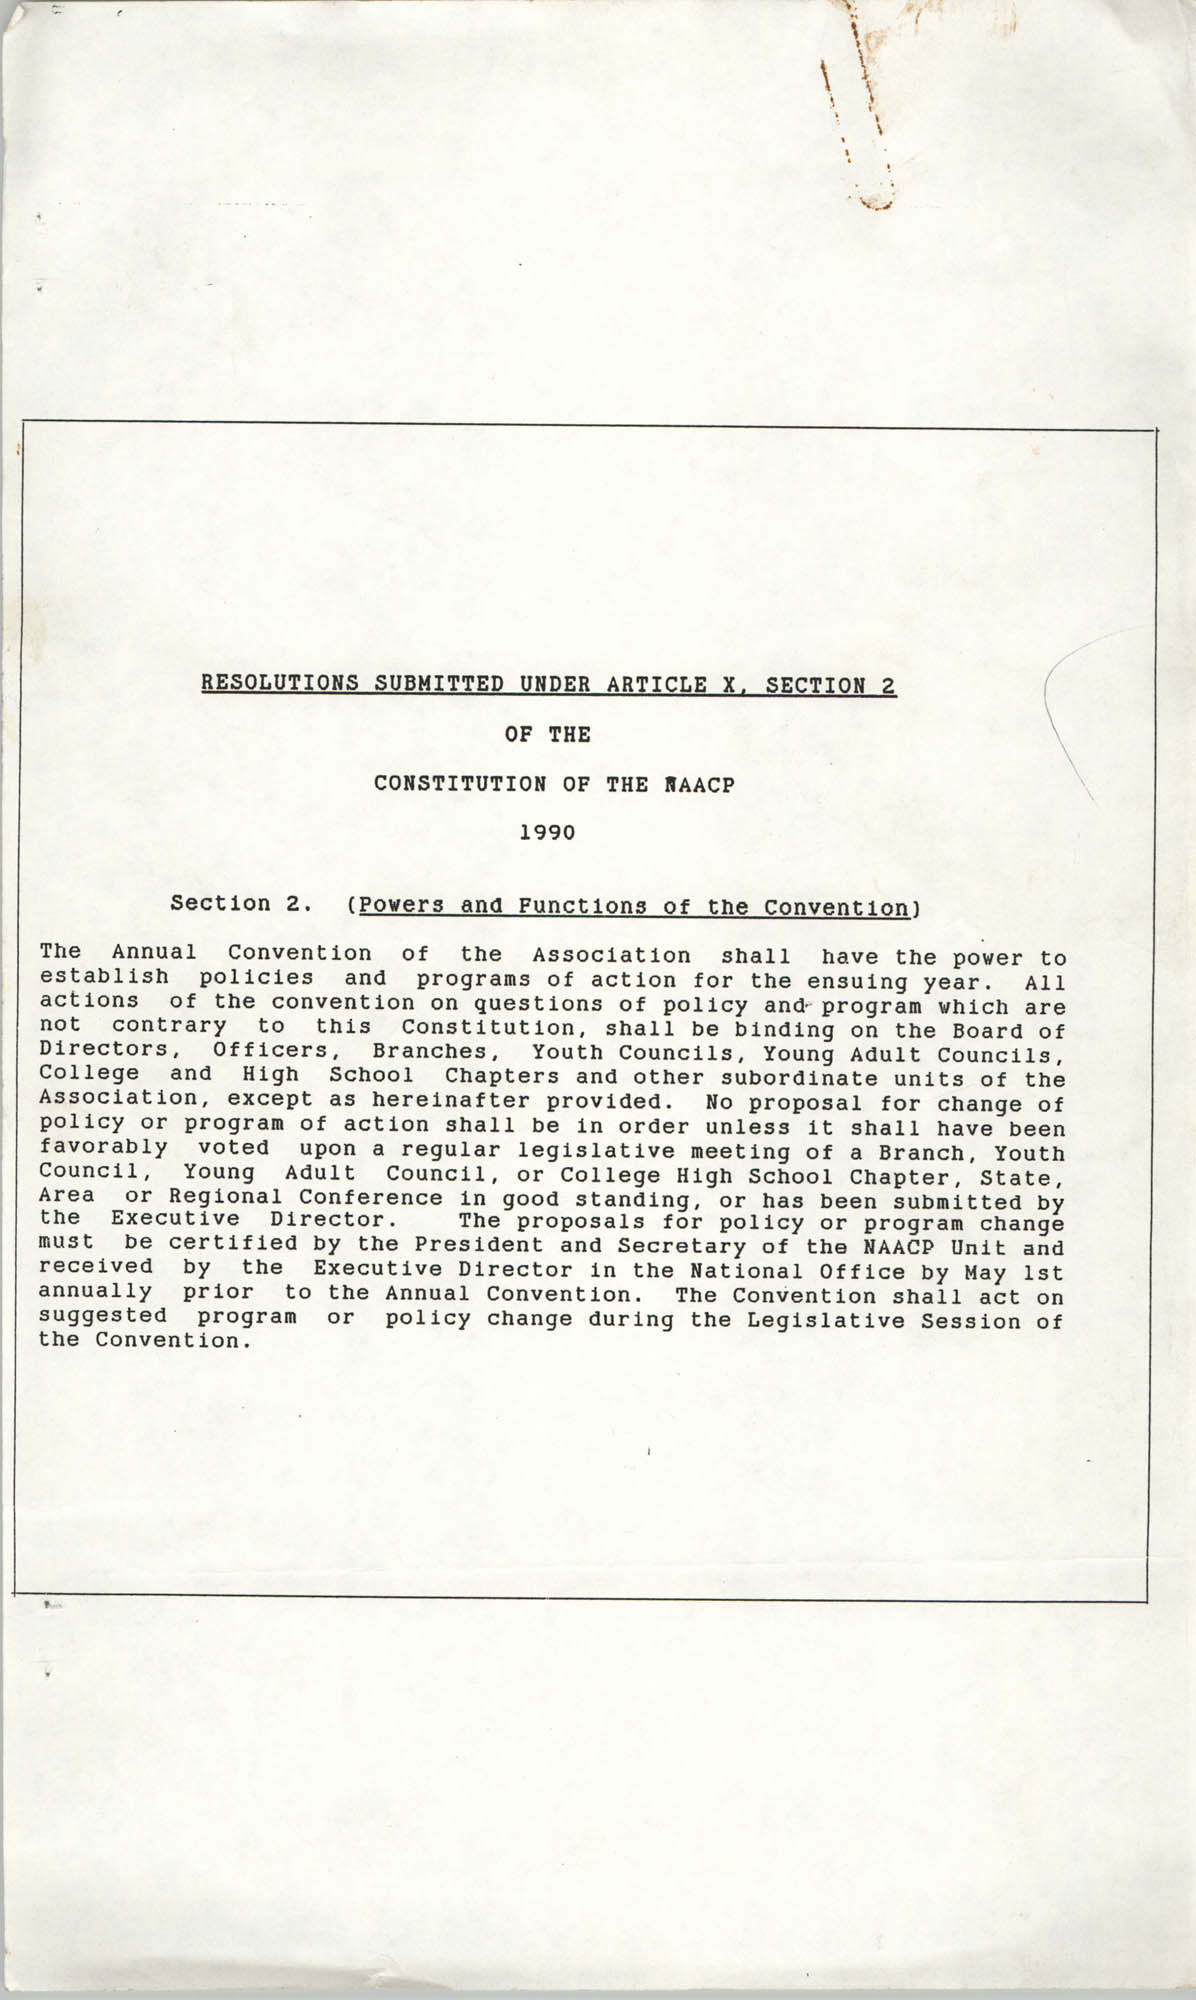 Resolutions Submitted Under Article X, Section 2 of the Constitution of the NAACP, 1990